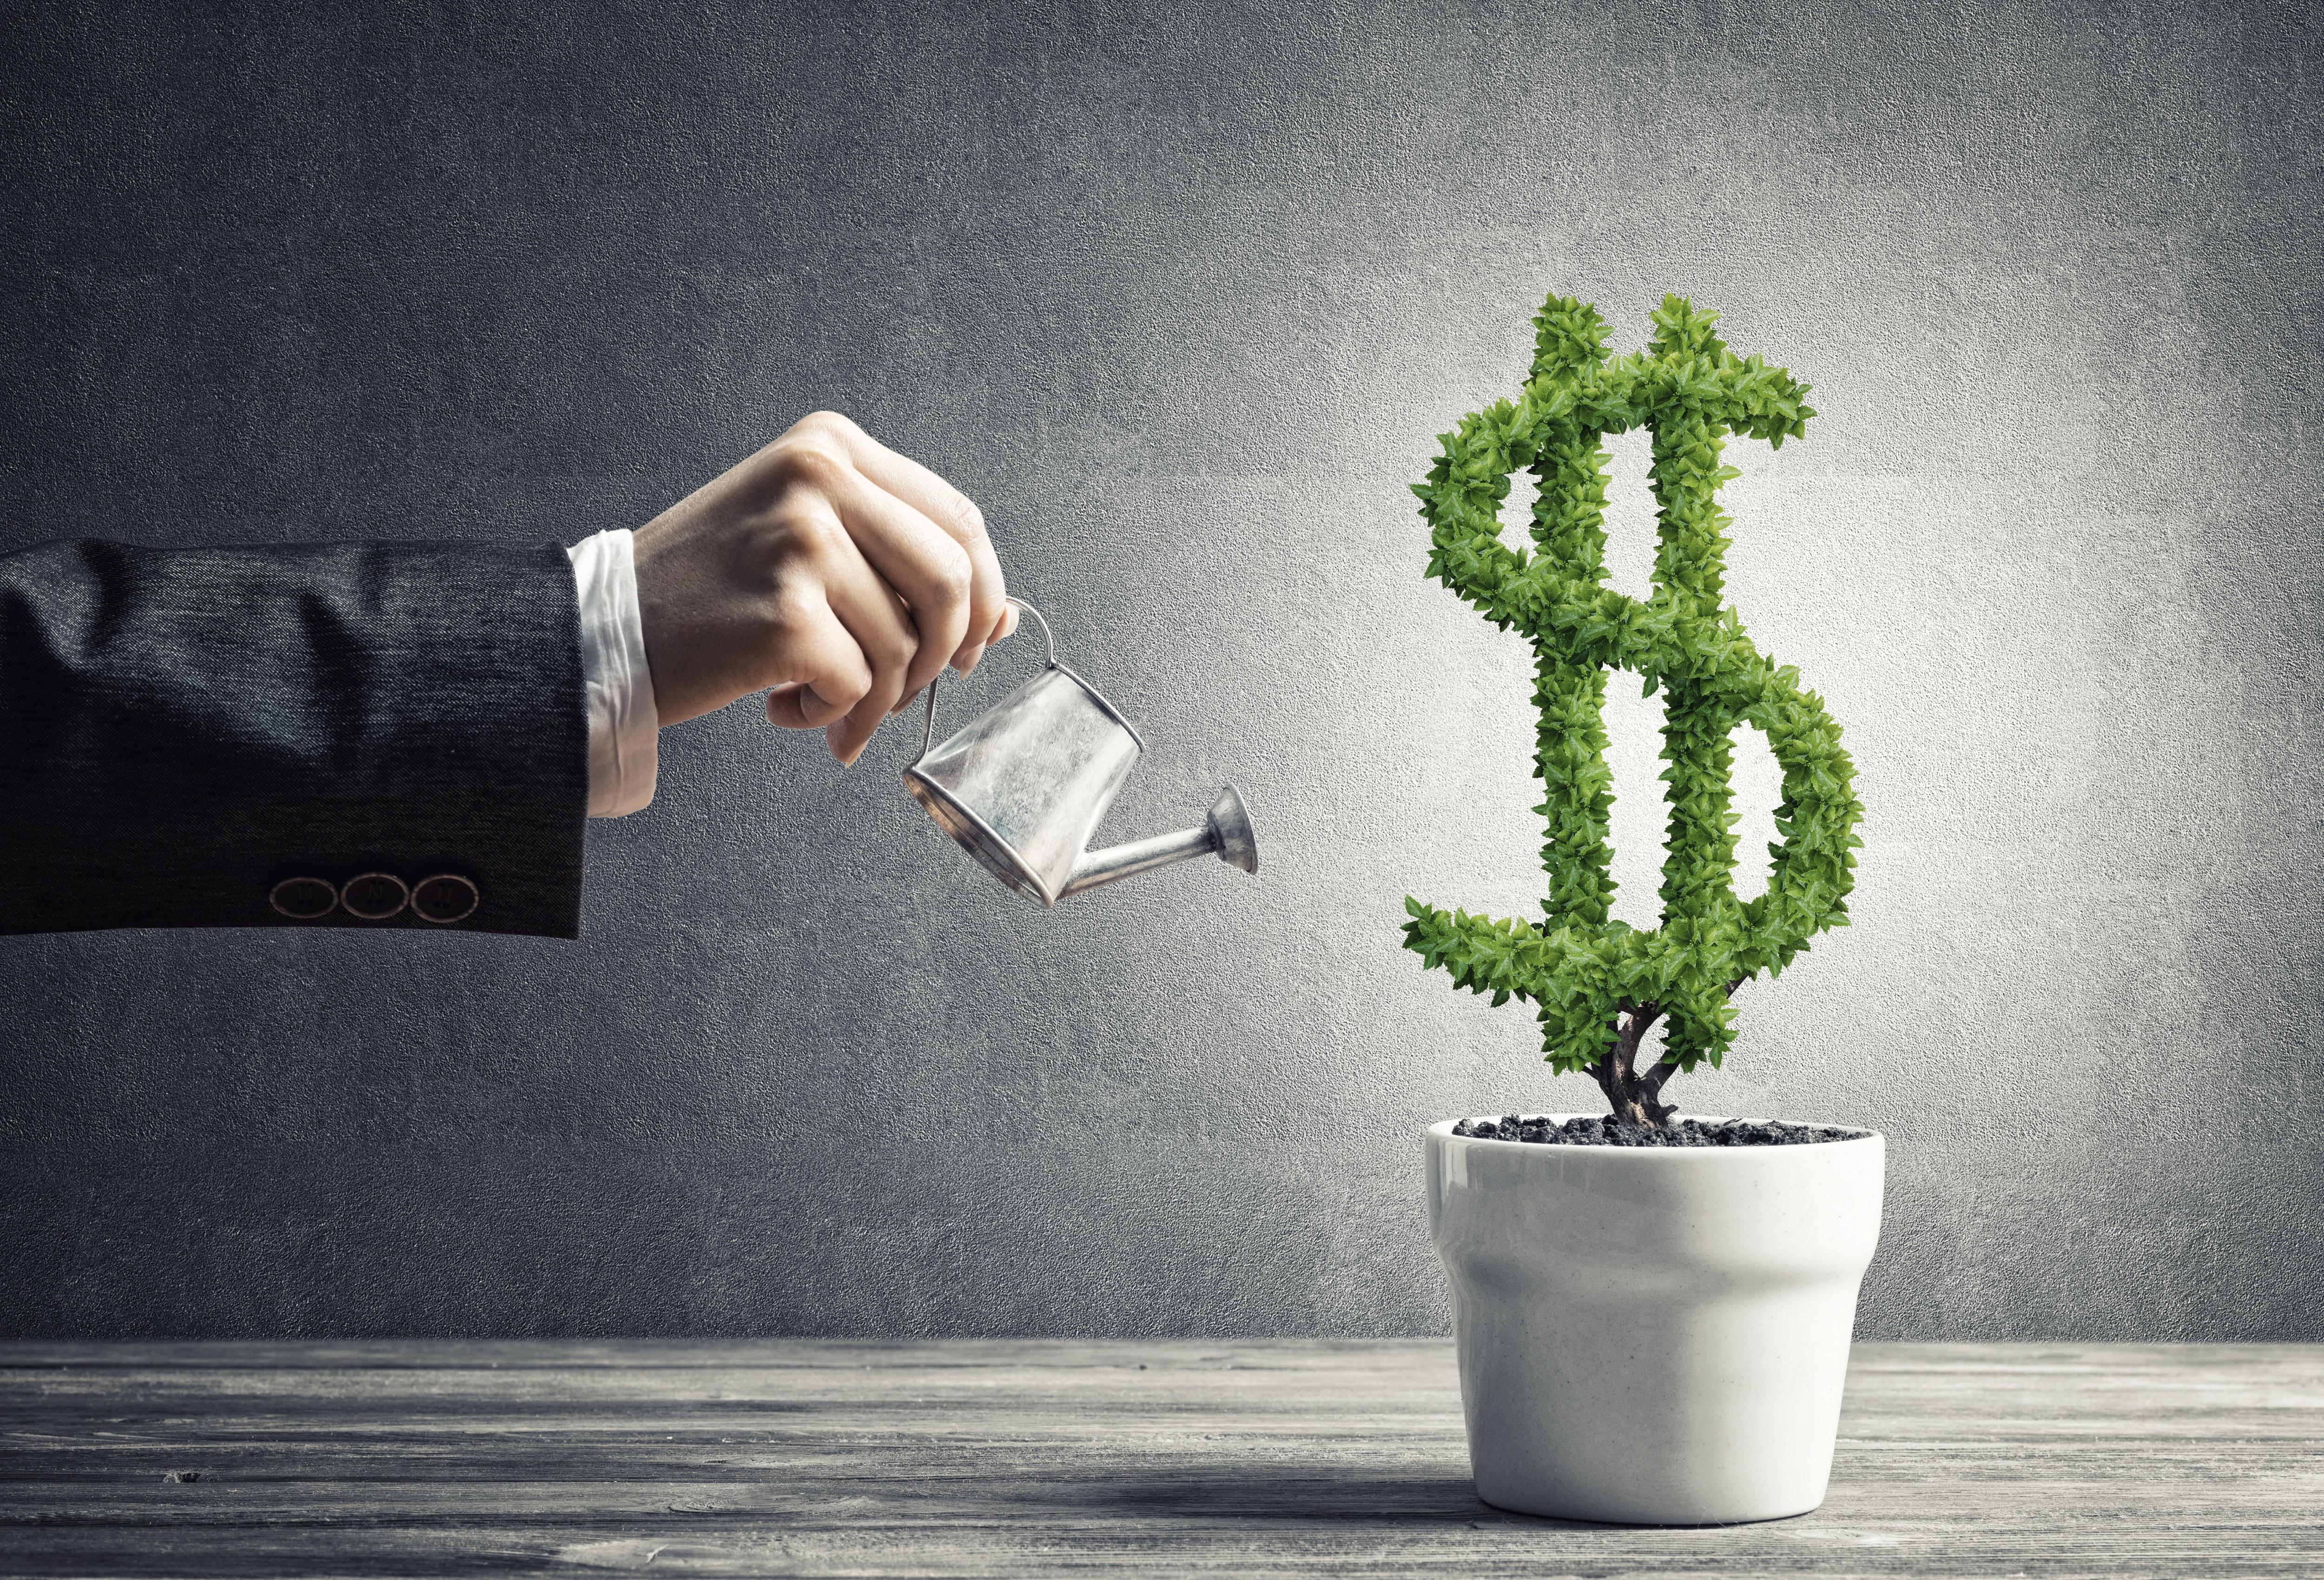 Can IT Make Your Organization More Profitable? - Featured Image